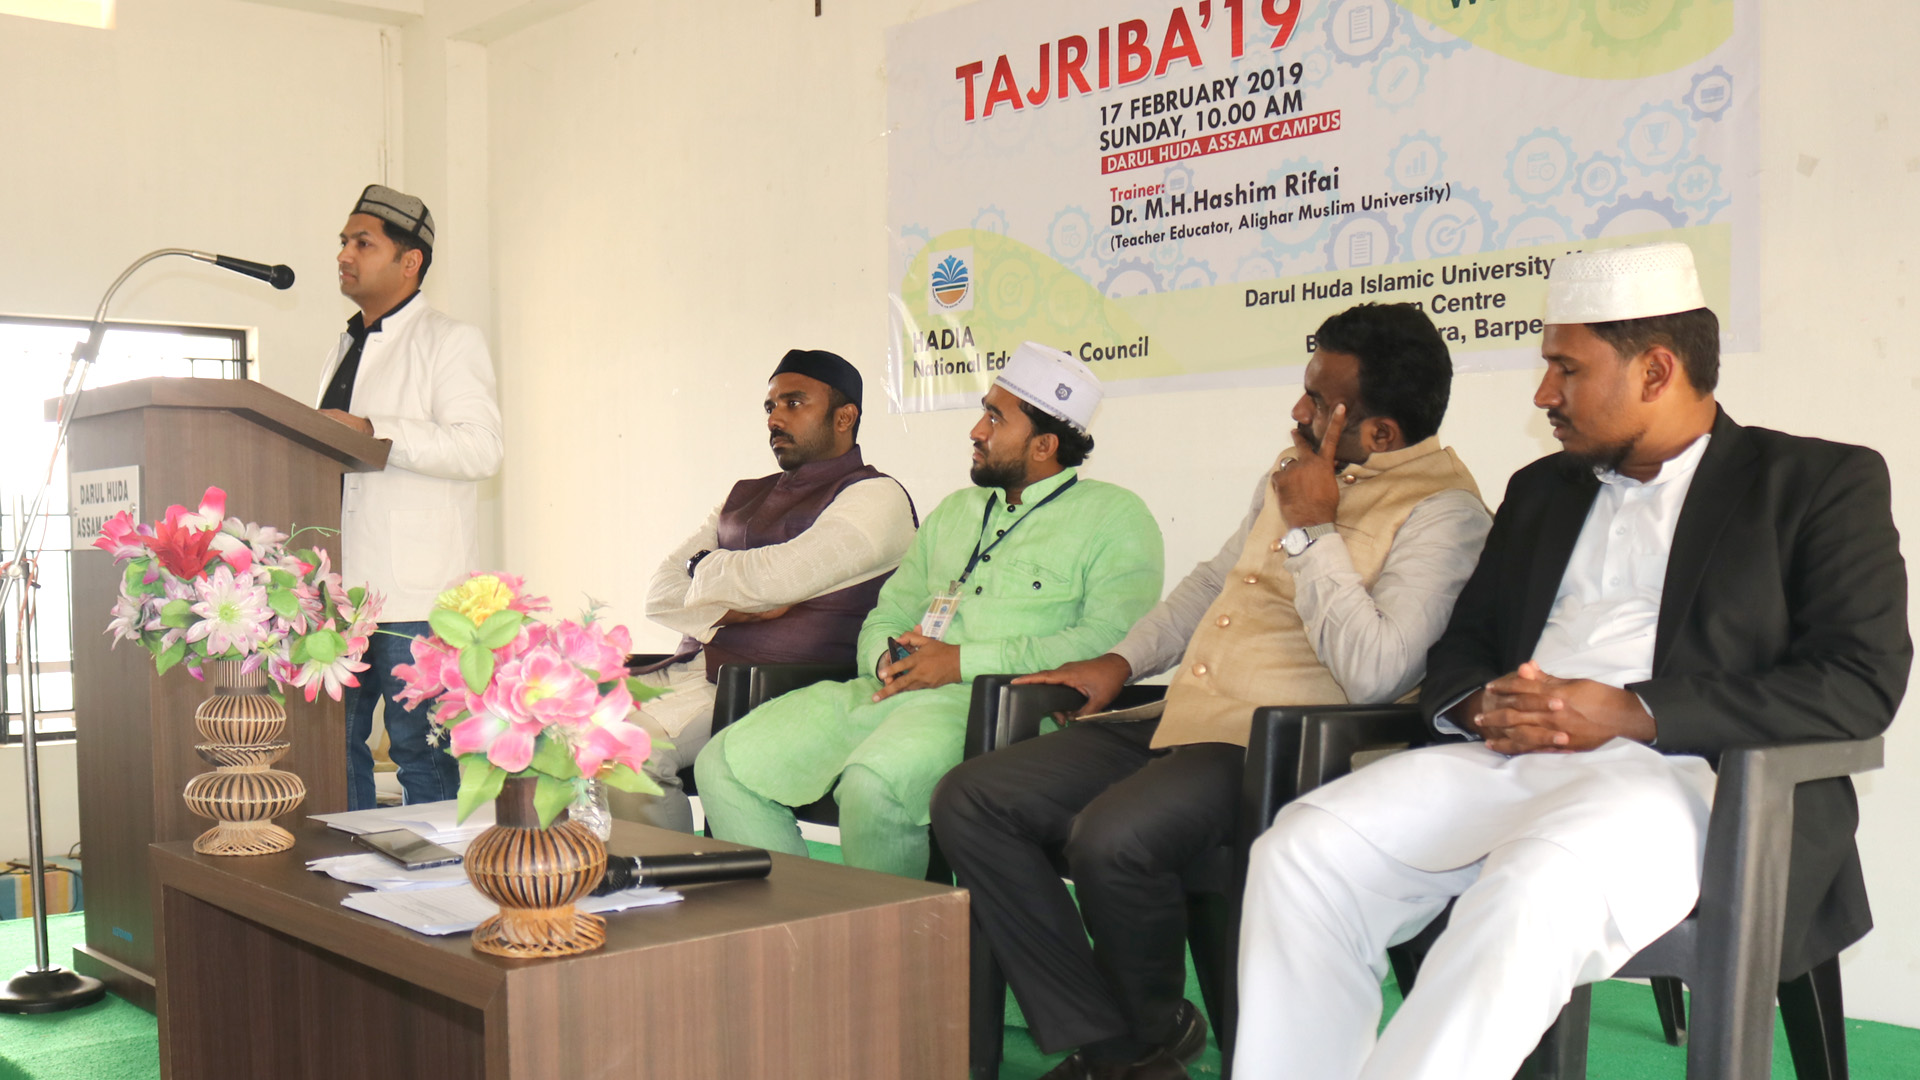 Mujeeb Jaihoon's concluding address at the Tajriba Training (One day Muallim Workshop), organized by the HADIA National Education Council, at the Darul Huda Assam Campus (Barpeta)